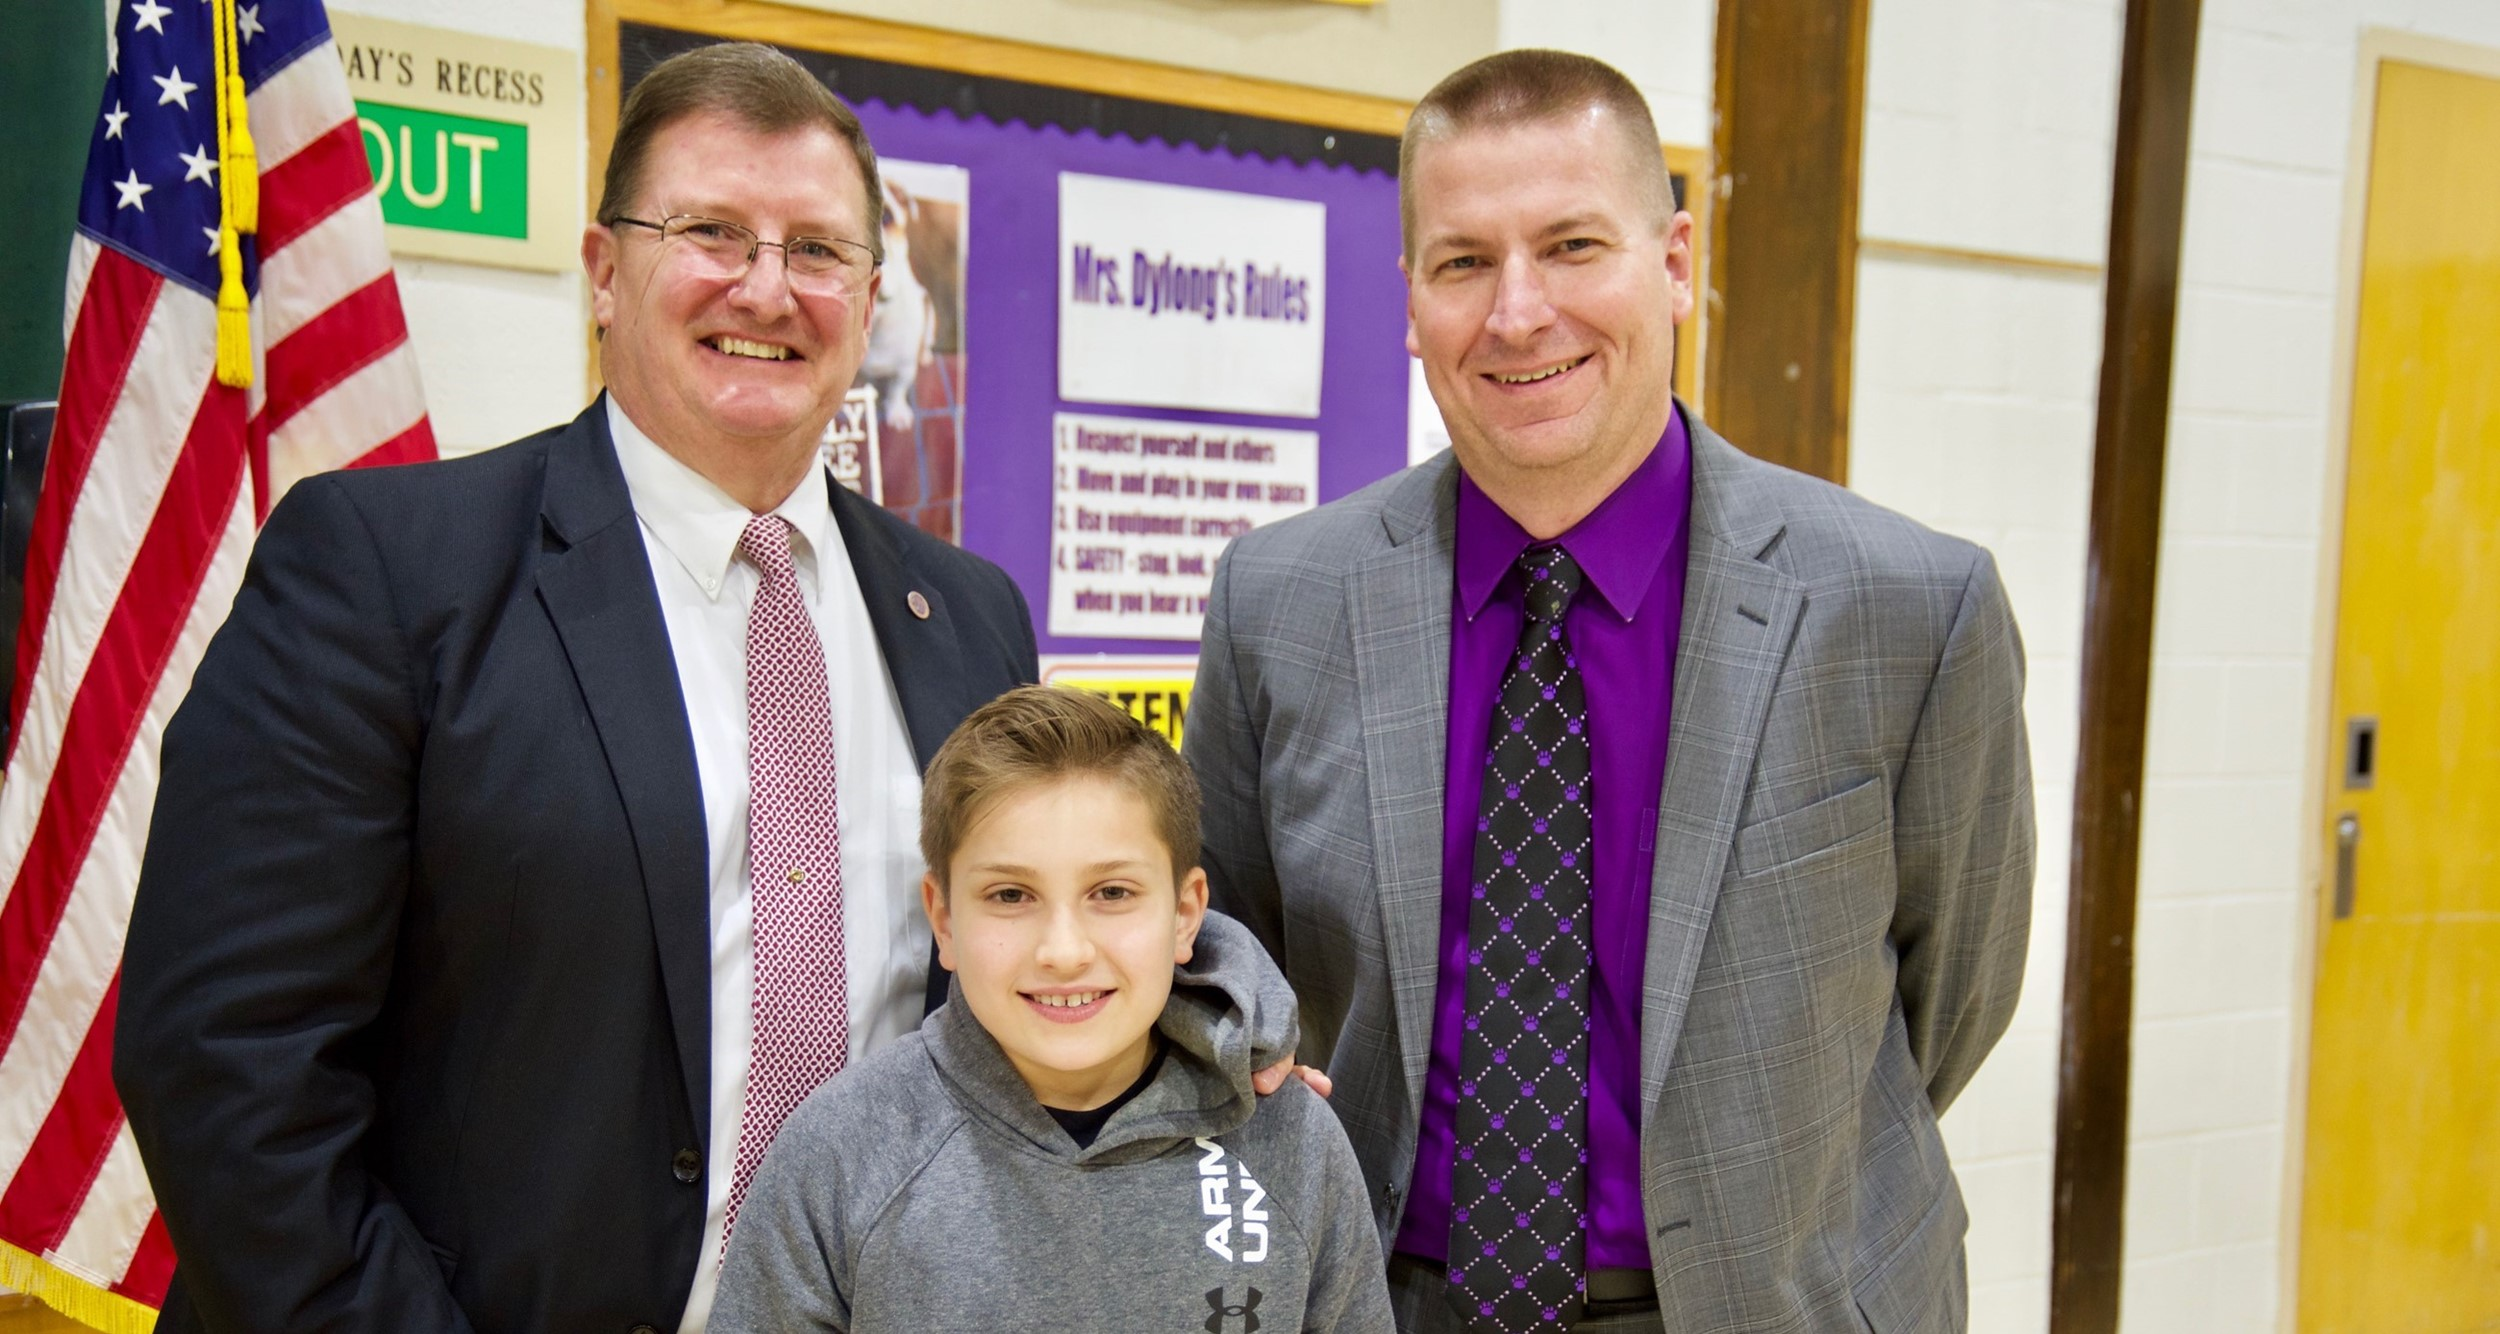 Royal View student recognized at February Board meeting